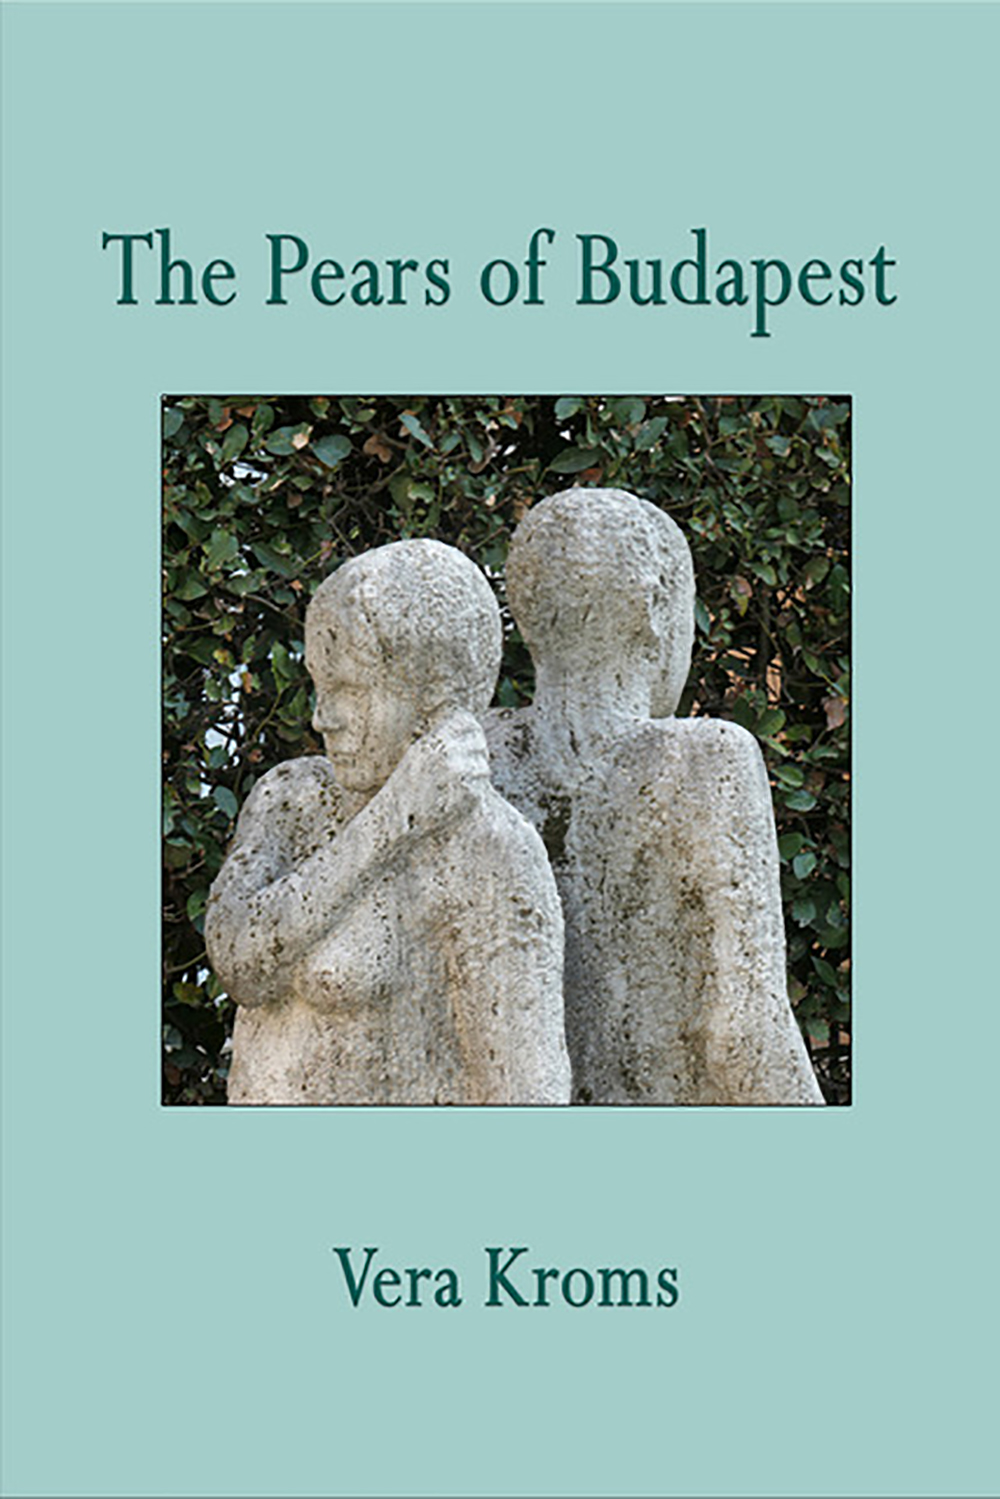 The Pears of Budapest